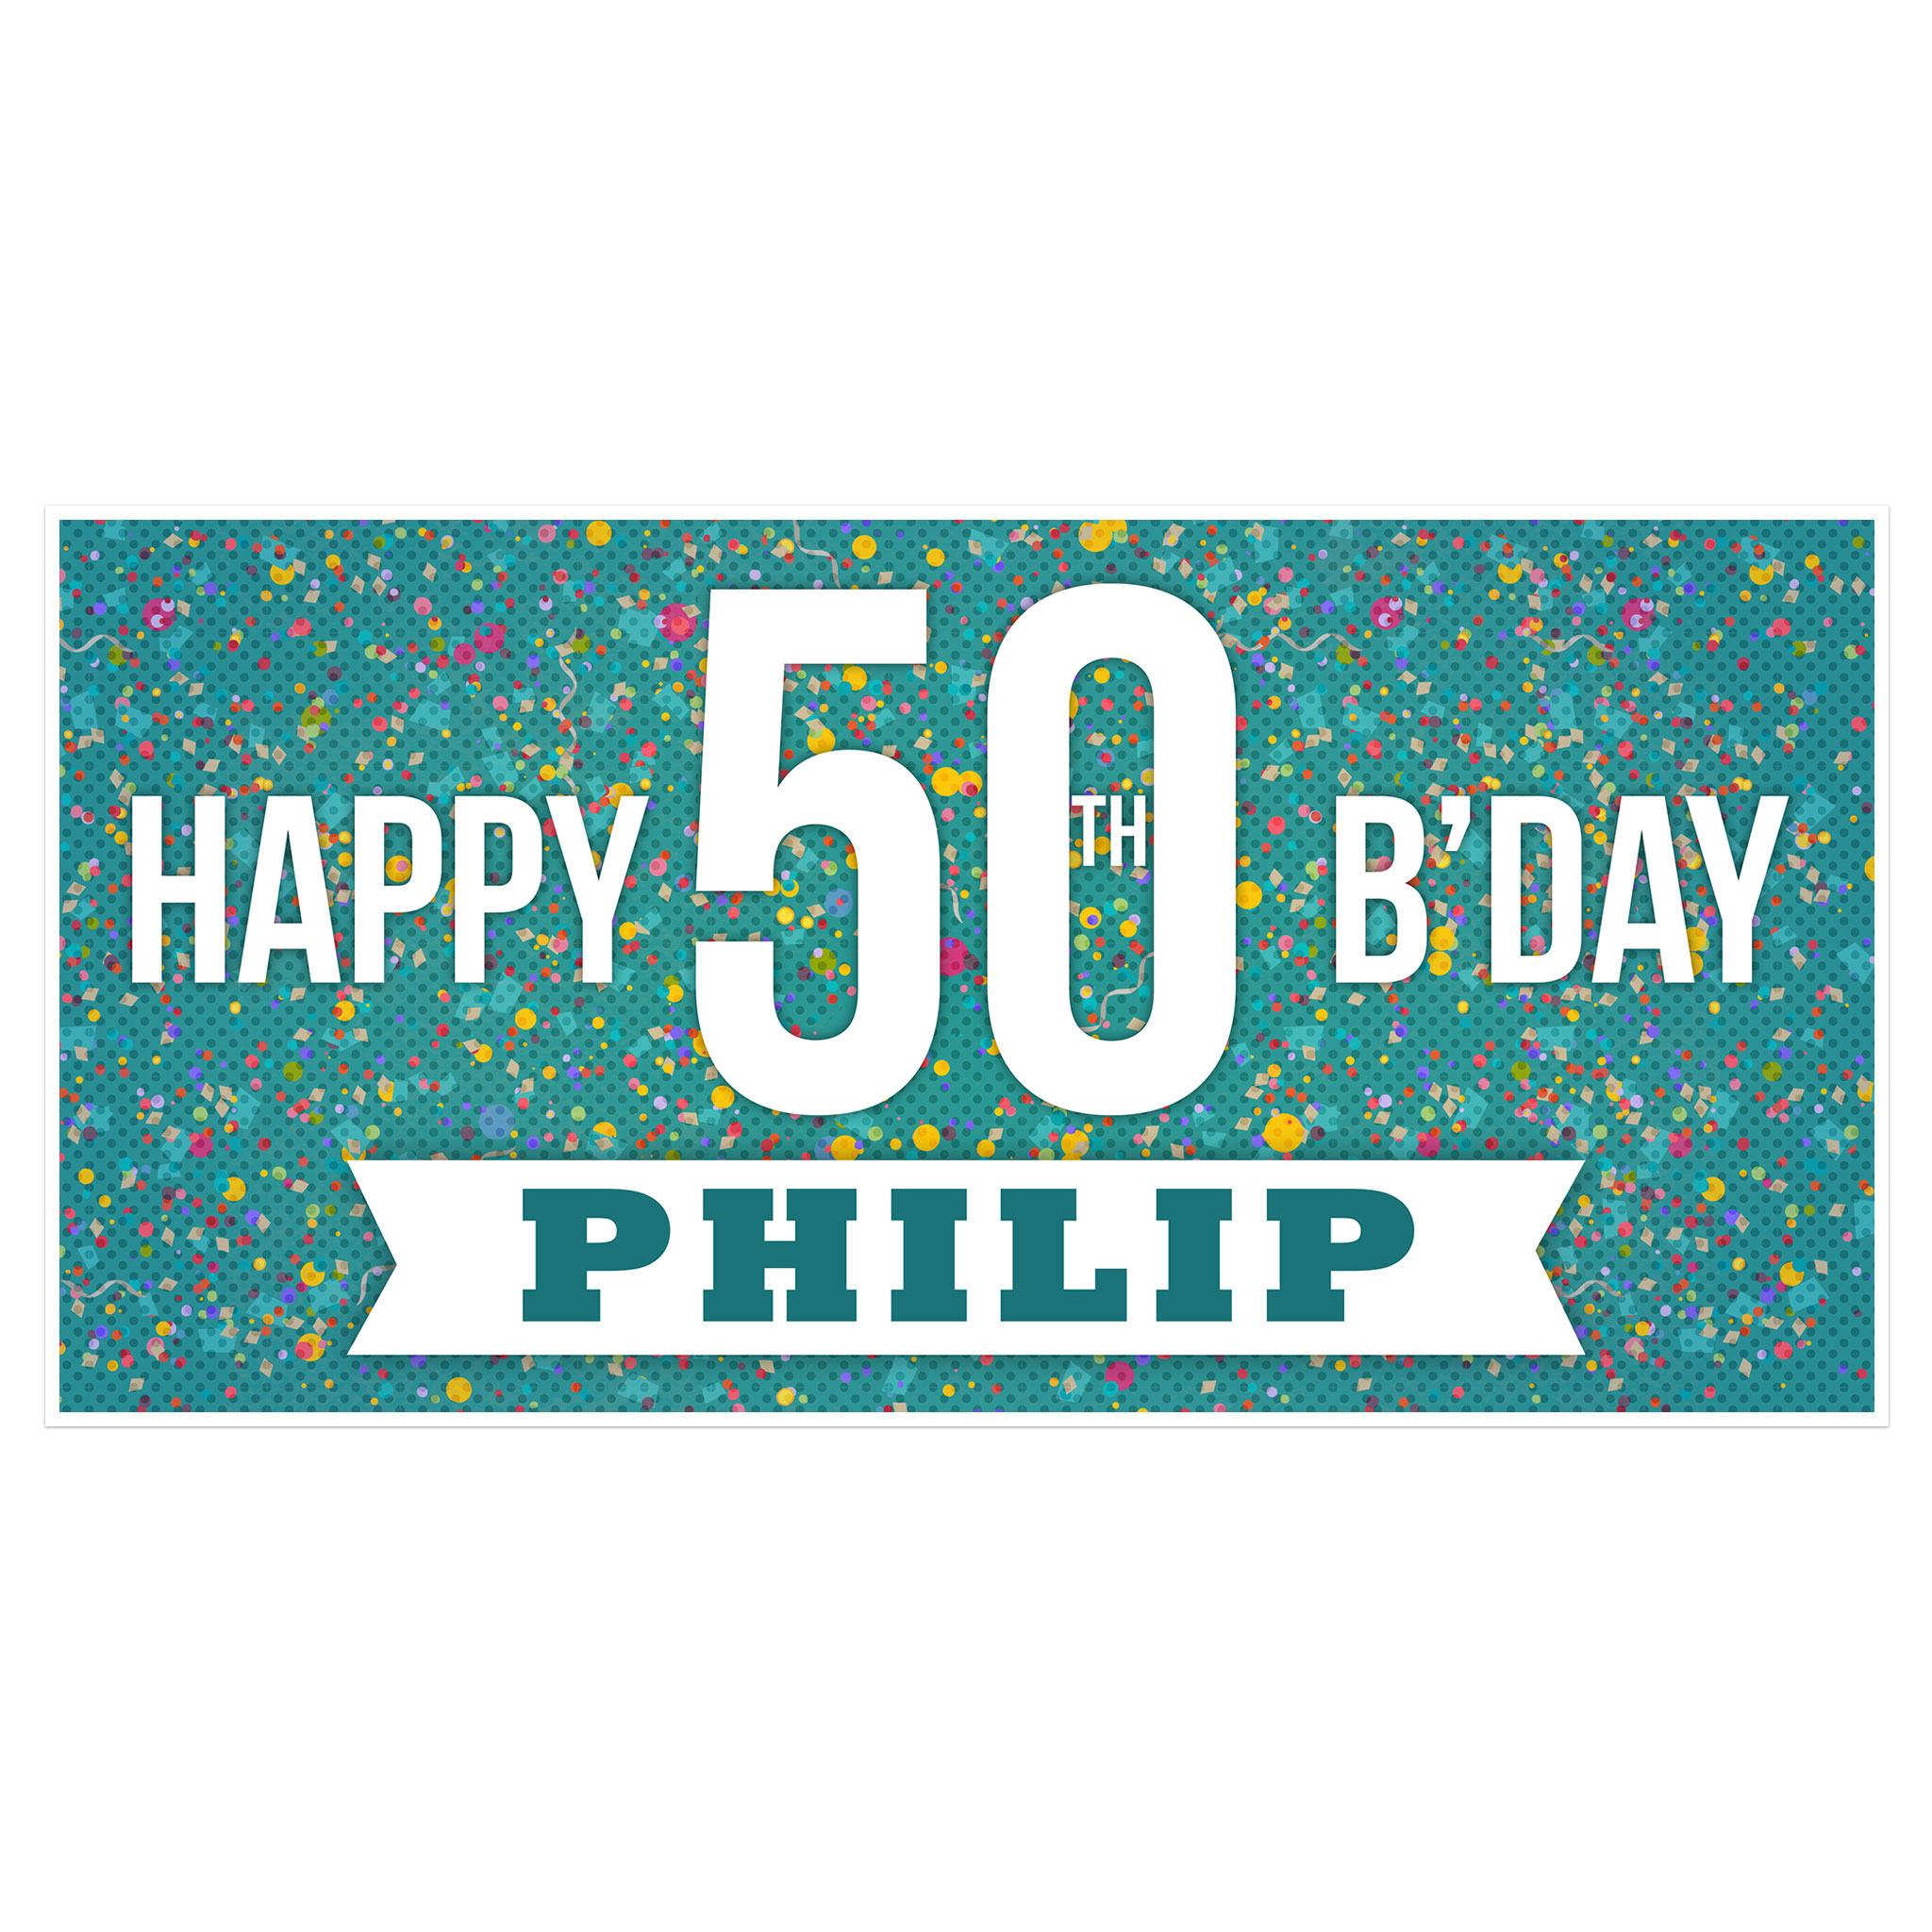 50th birthday banners with photo ; 50th-birthday-banner-06